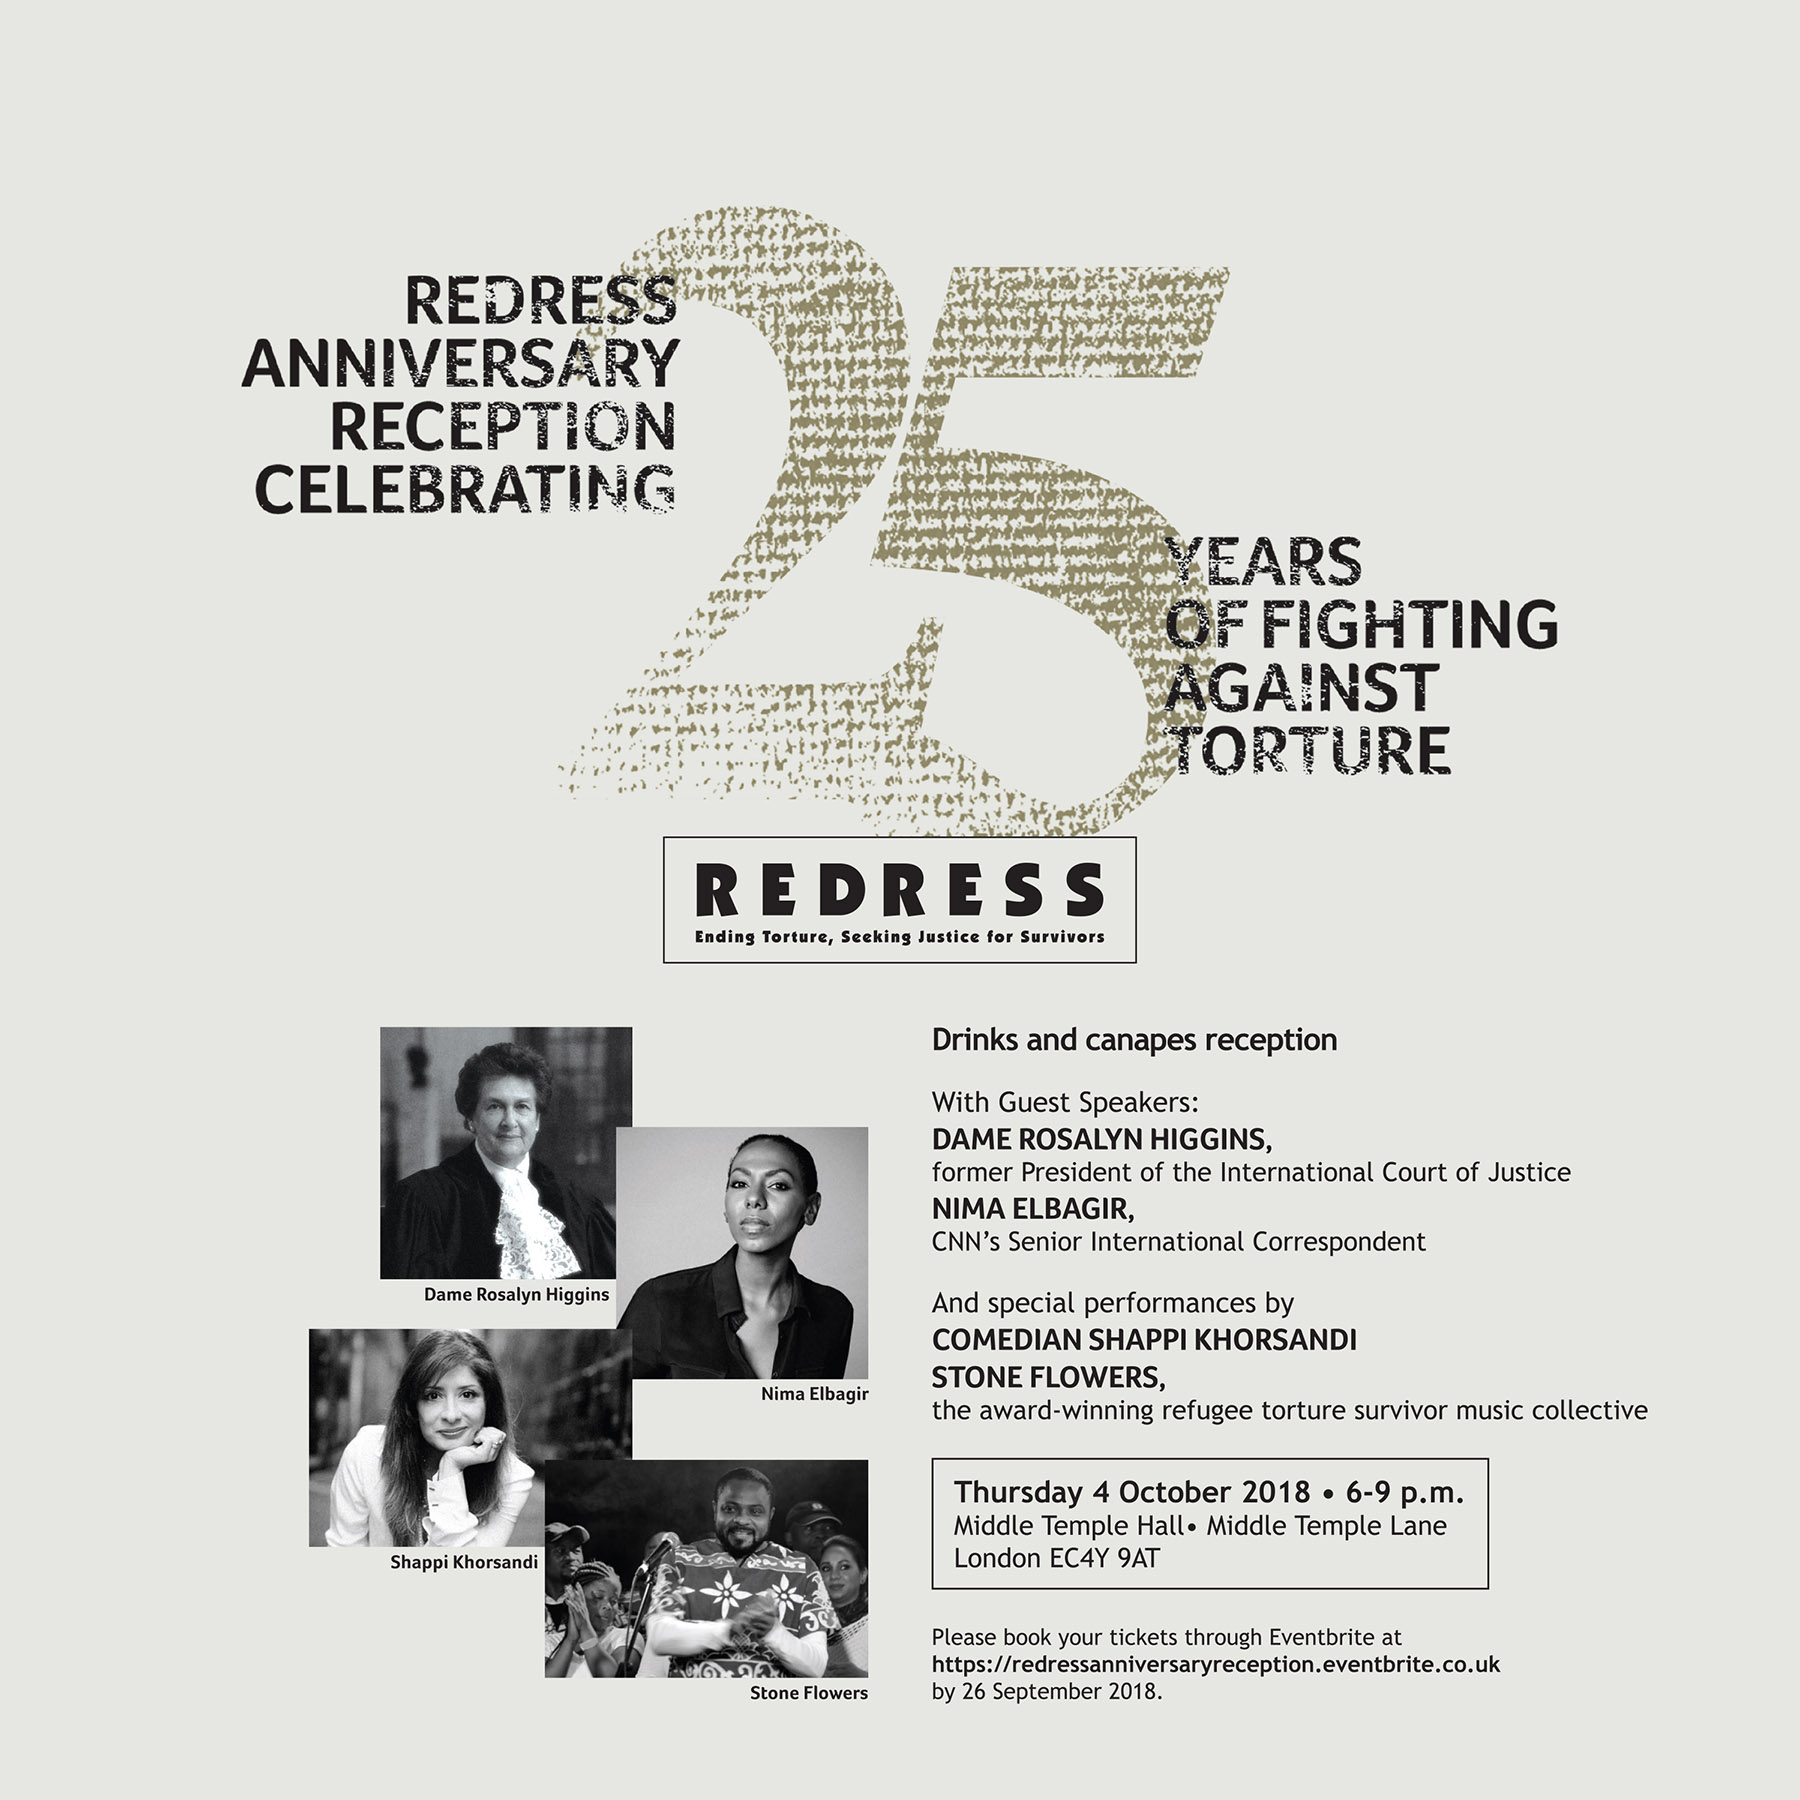 REDRESS' Anniversary Reception celebrating 25 Years of Fighting Against Torture